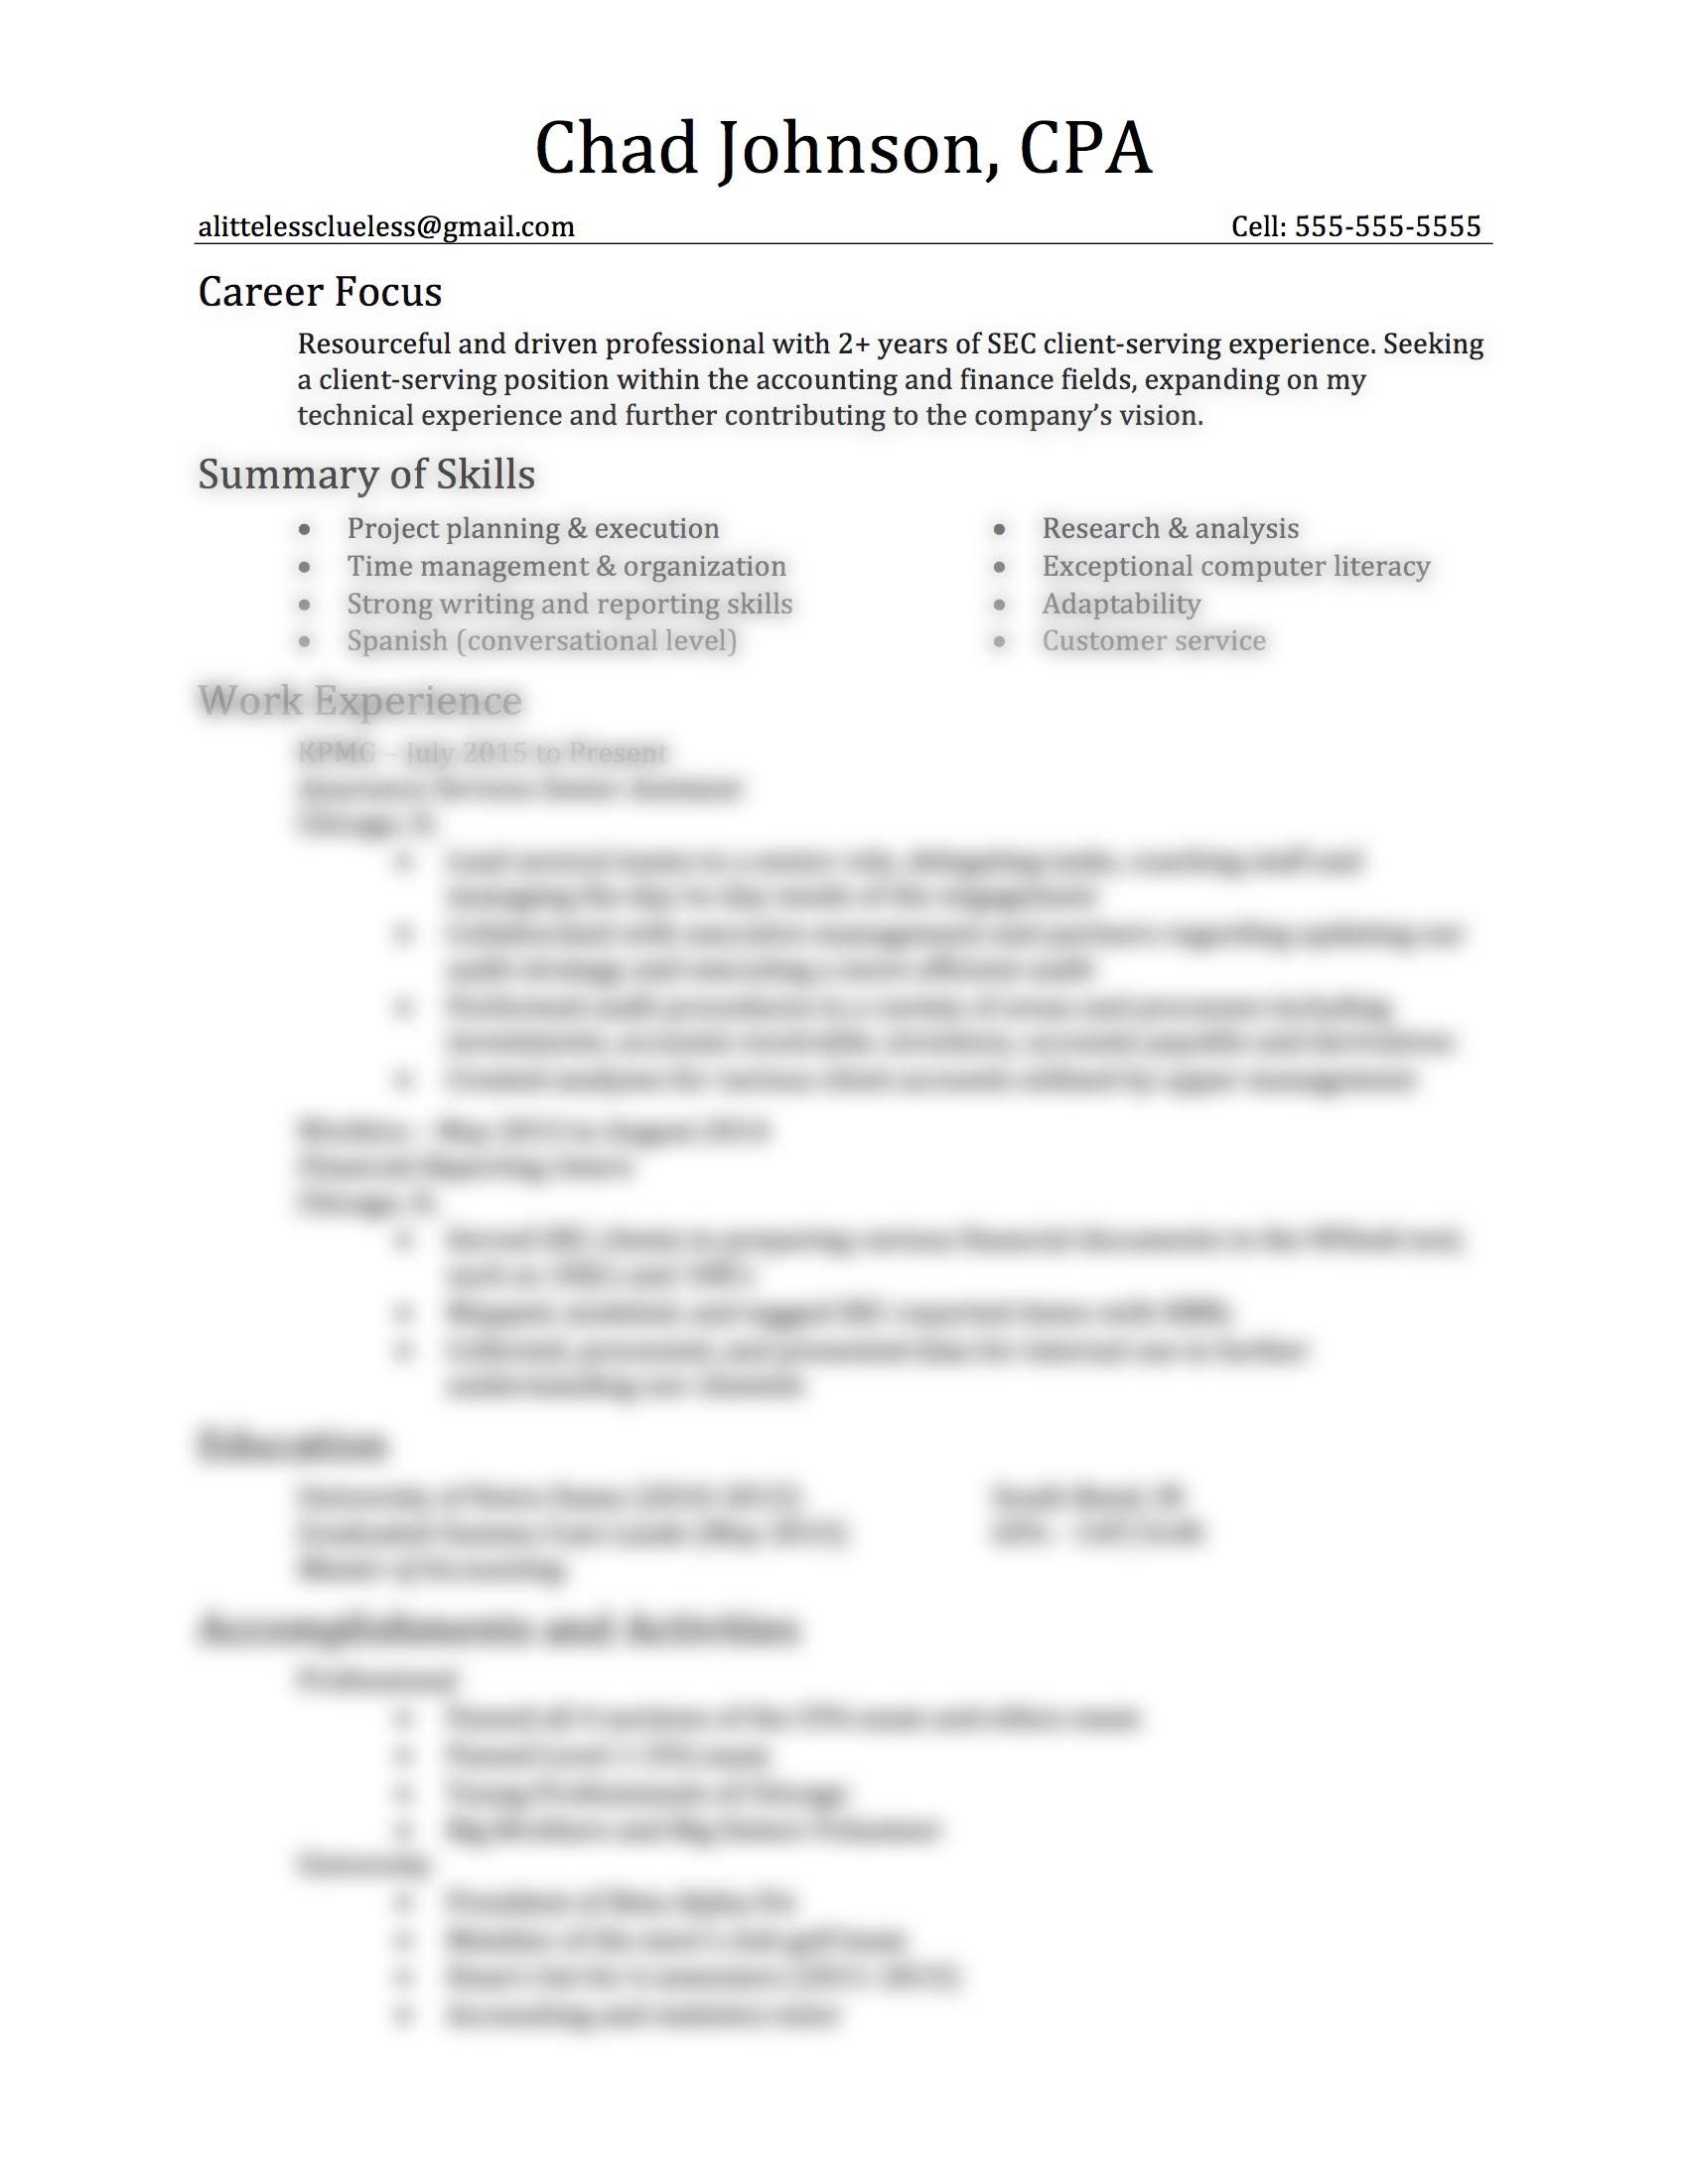 Career Focus For Resume Professional Resume Template  Easy To Use Brought To Youa .